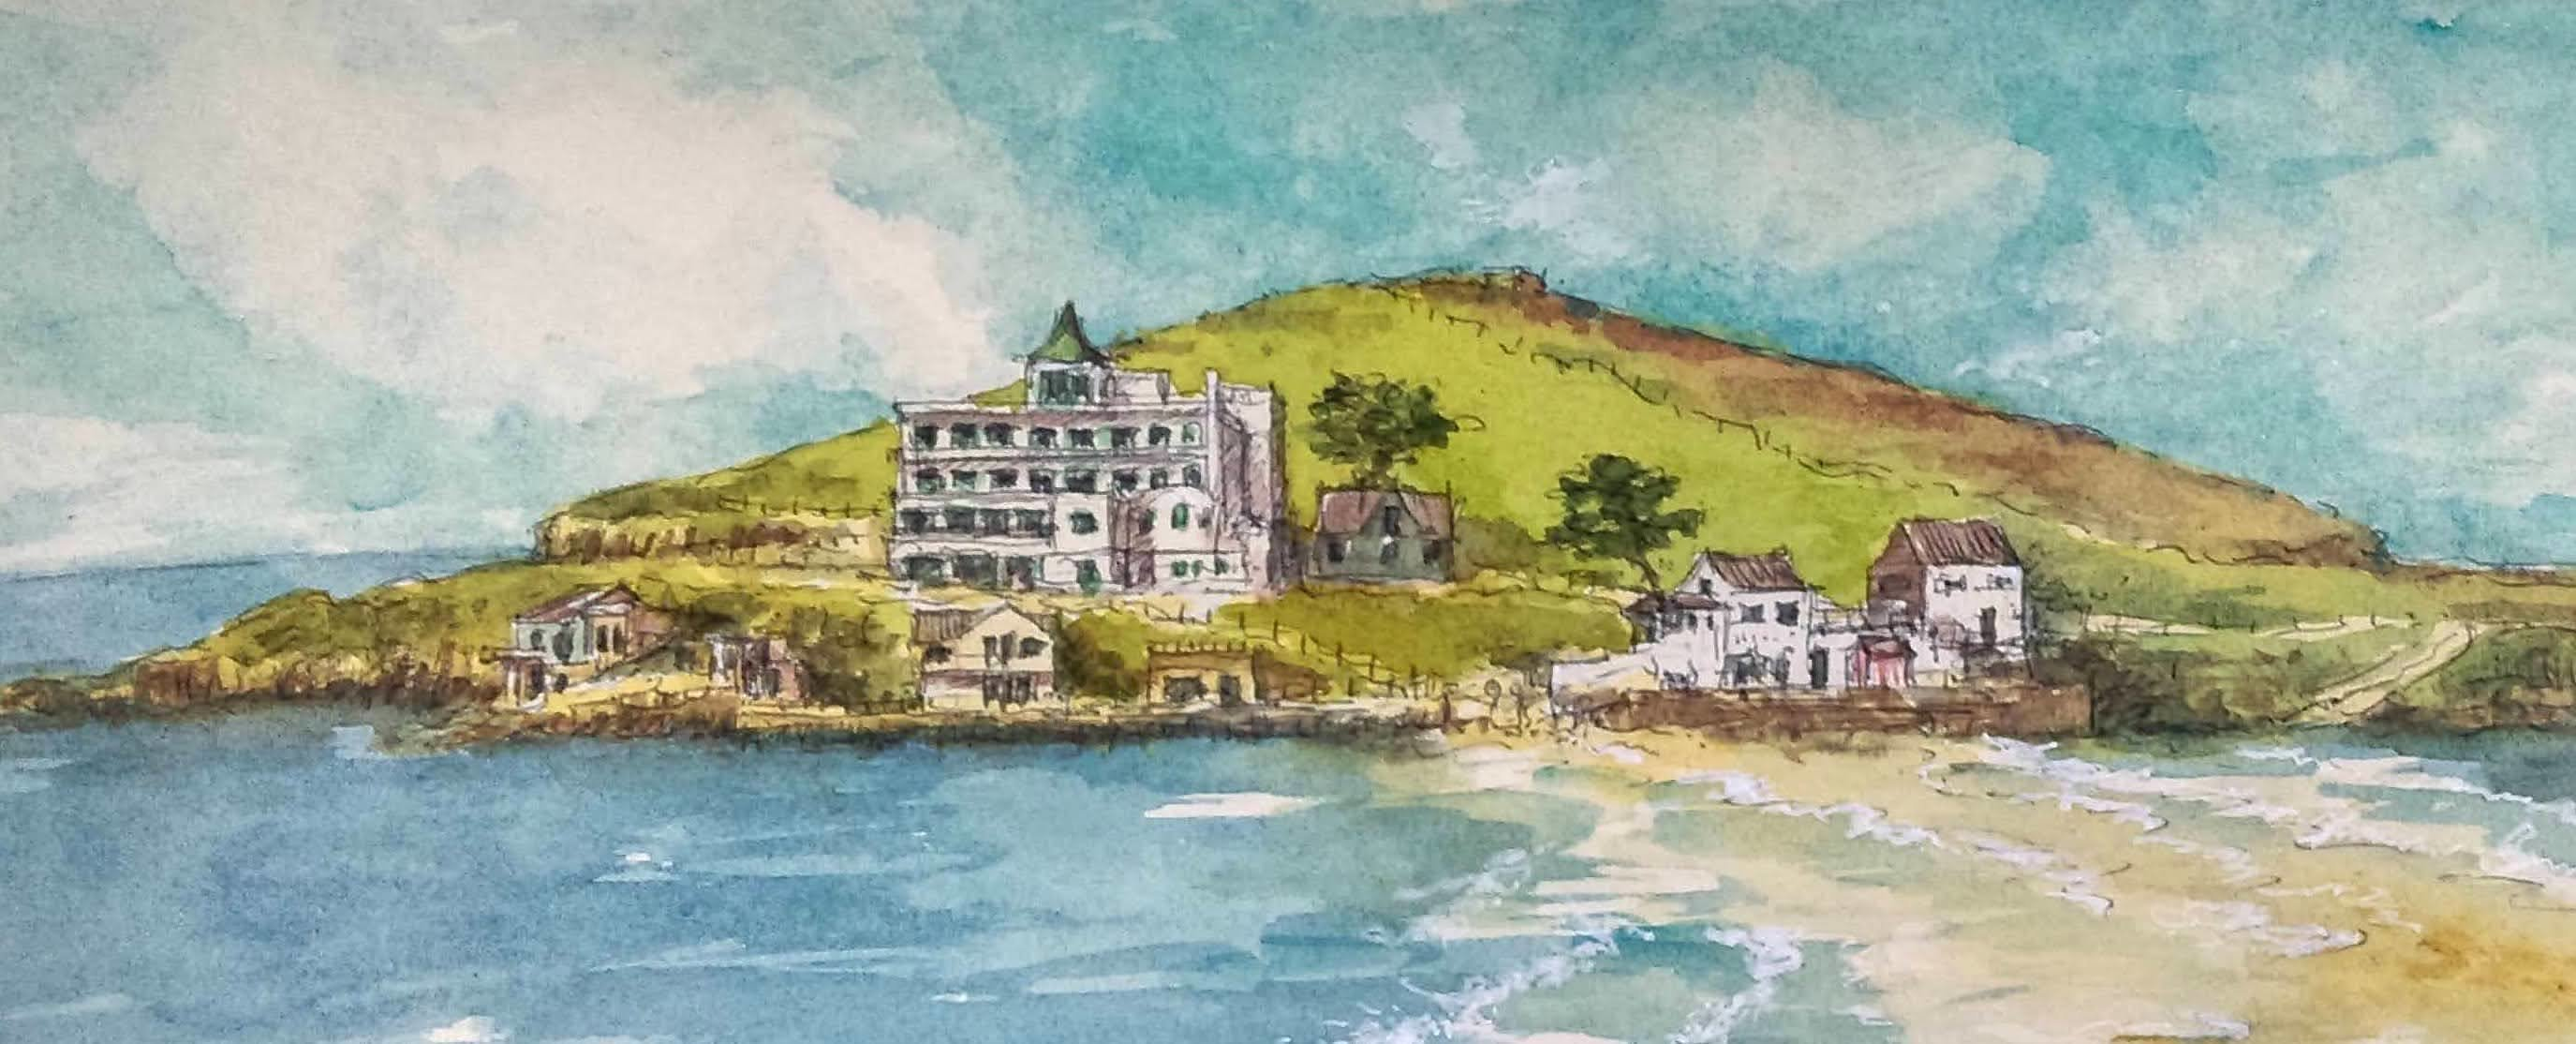 Home, News & Events. Burgh Island